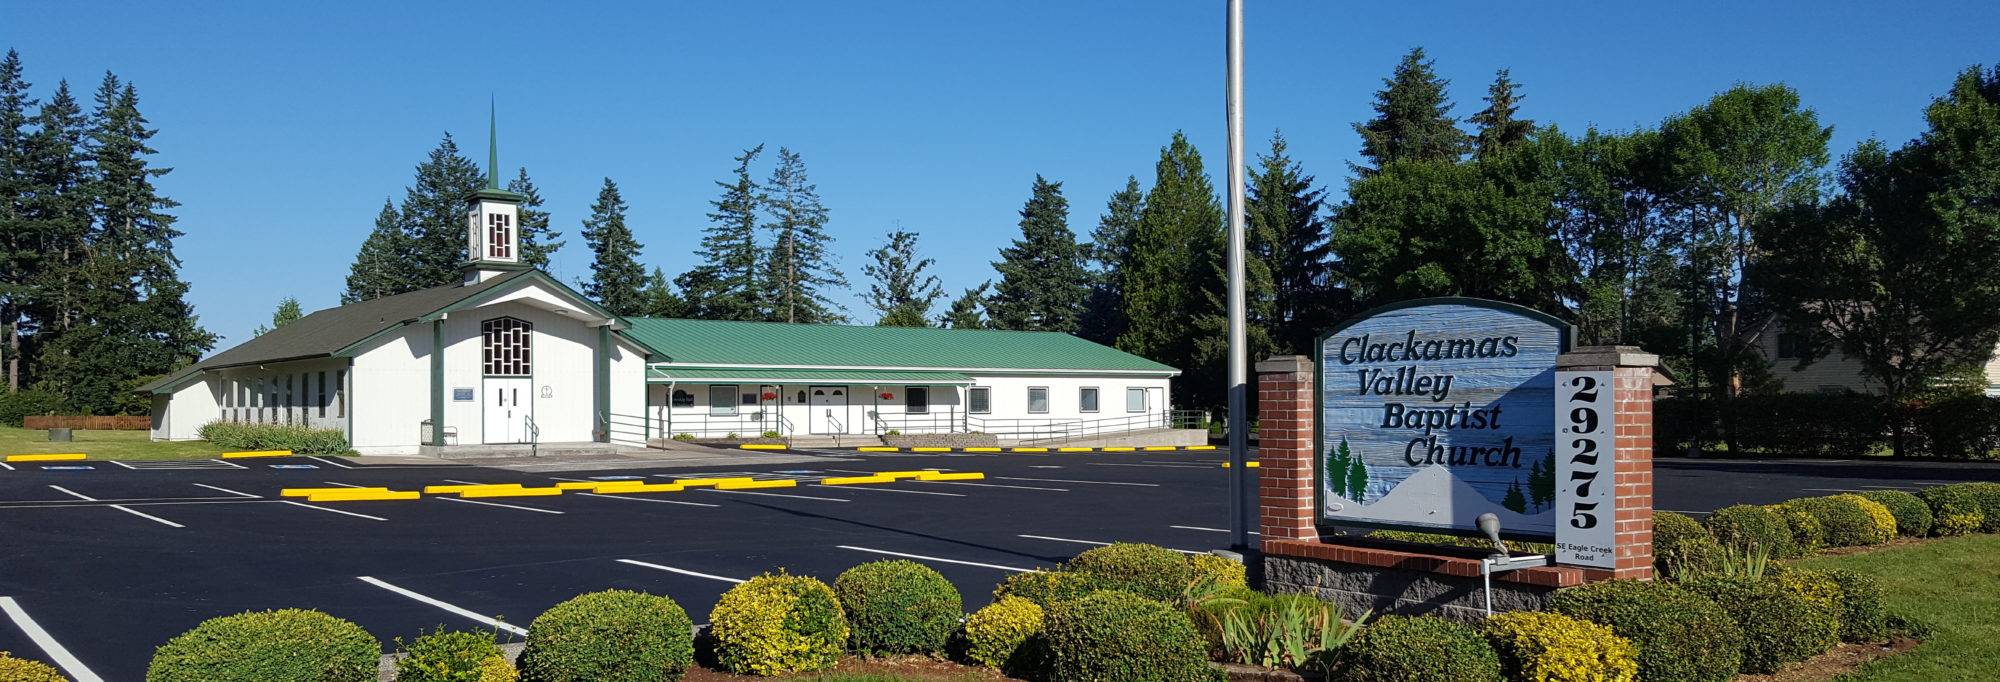 Clackamas Valley Baptist Church – (Official site)